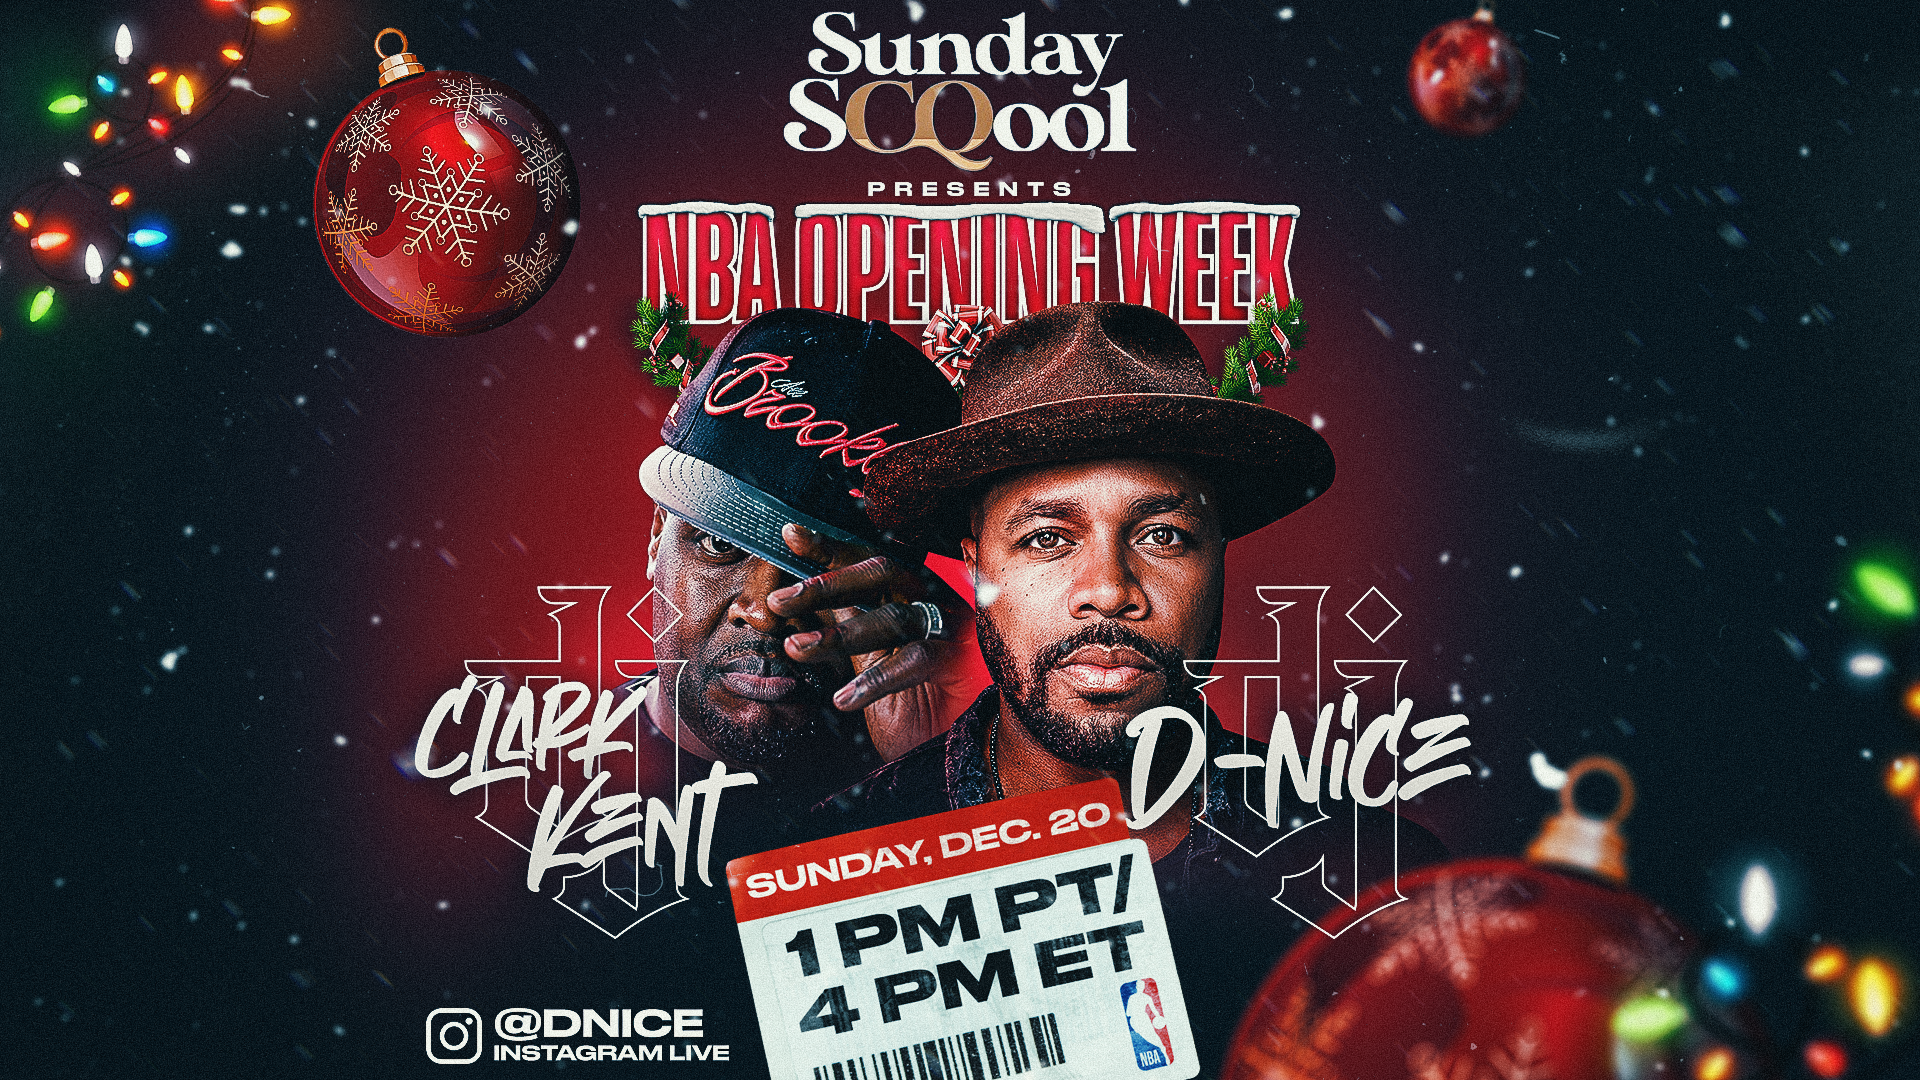 Sunday Scqool presents NBA Opening Week